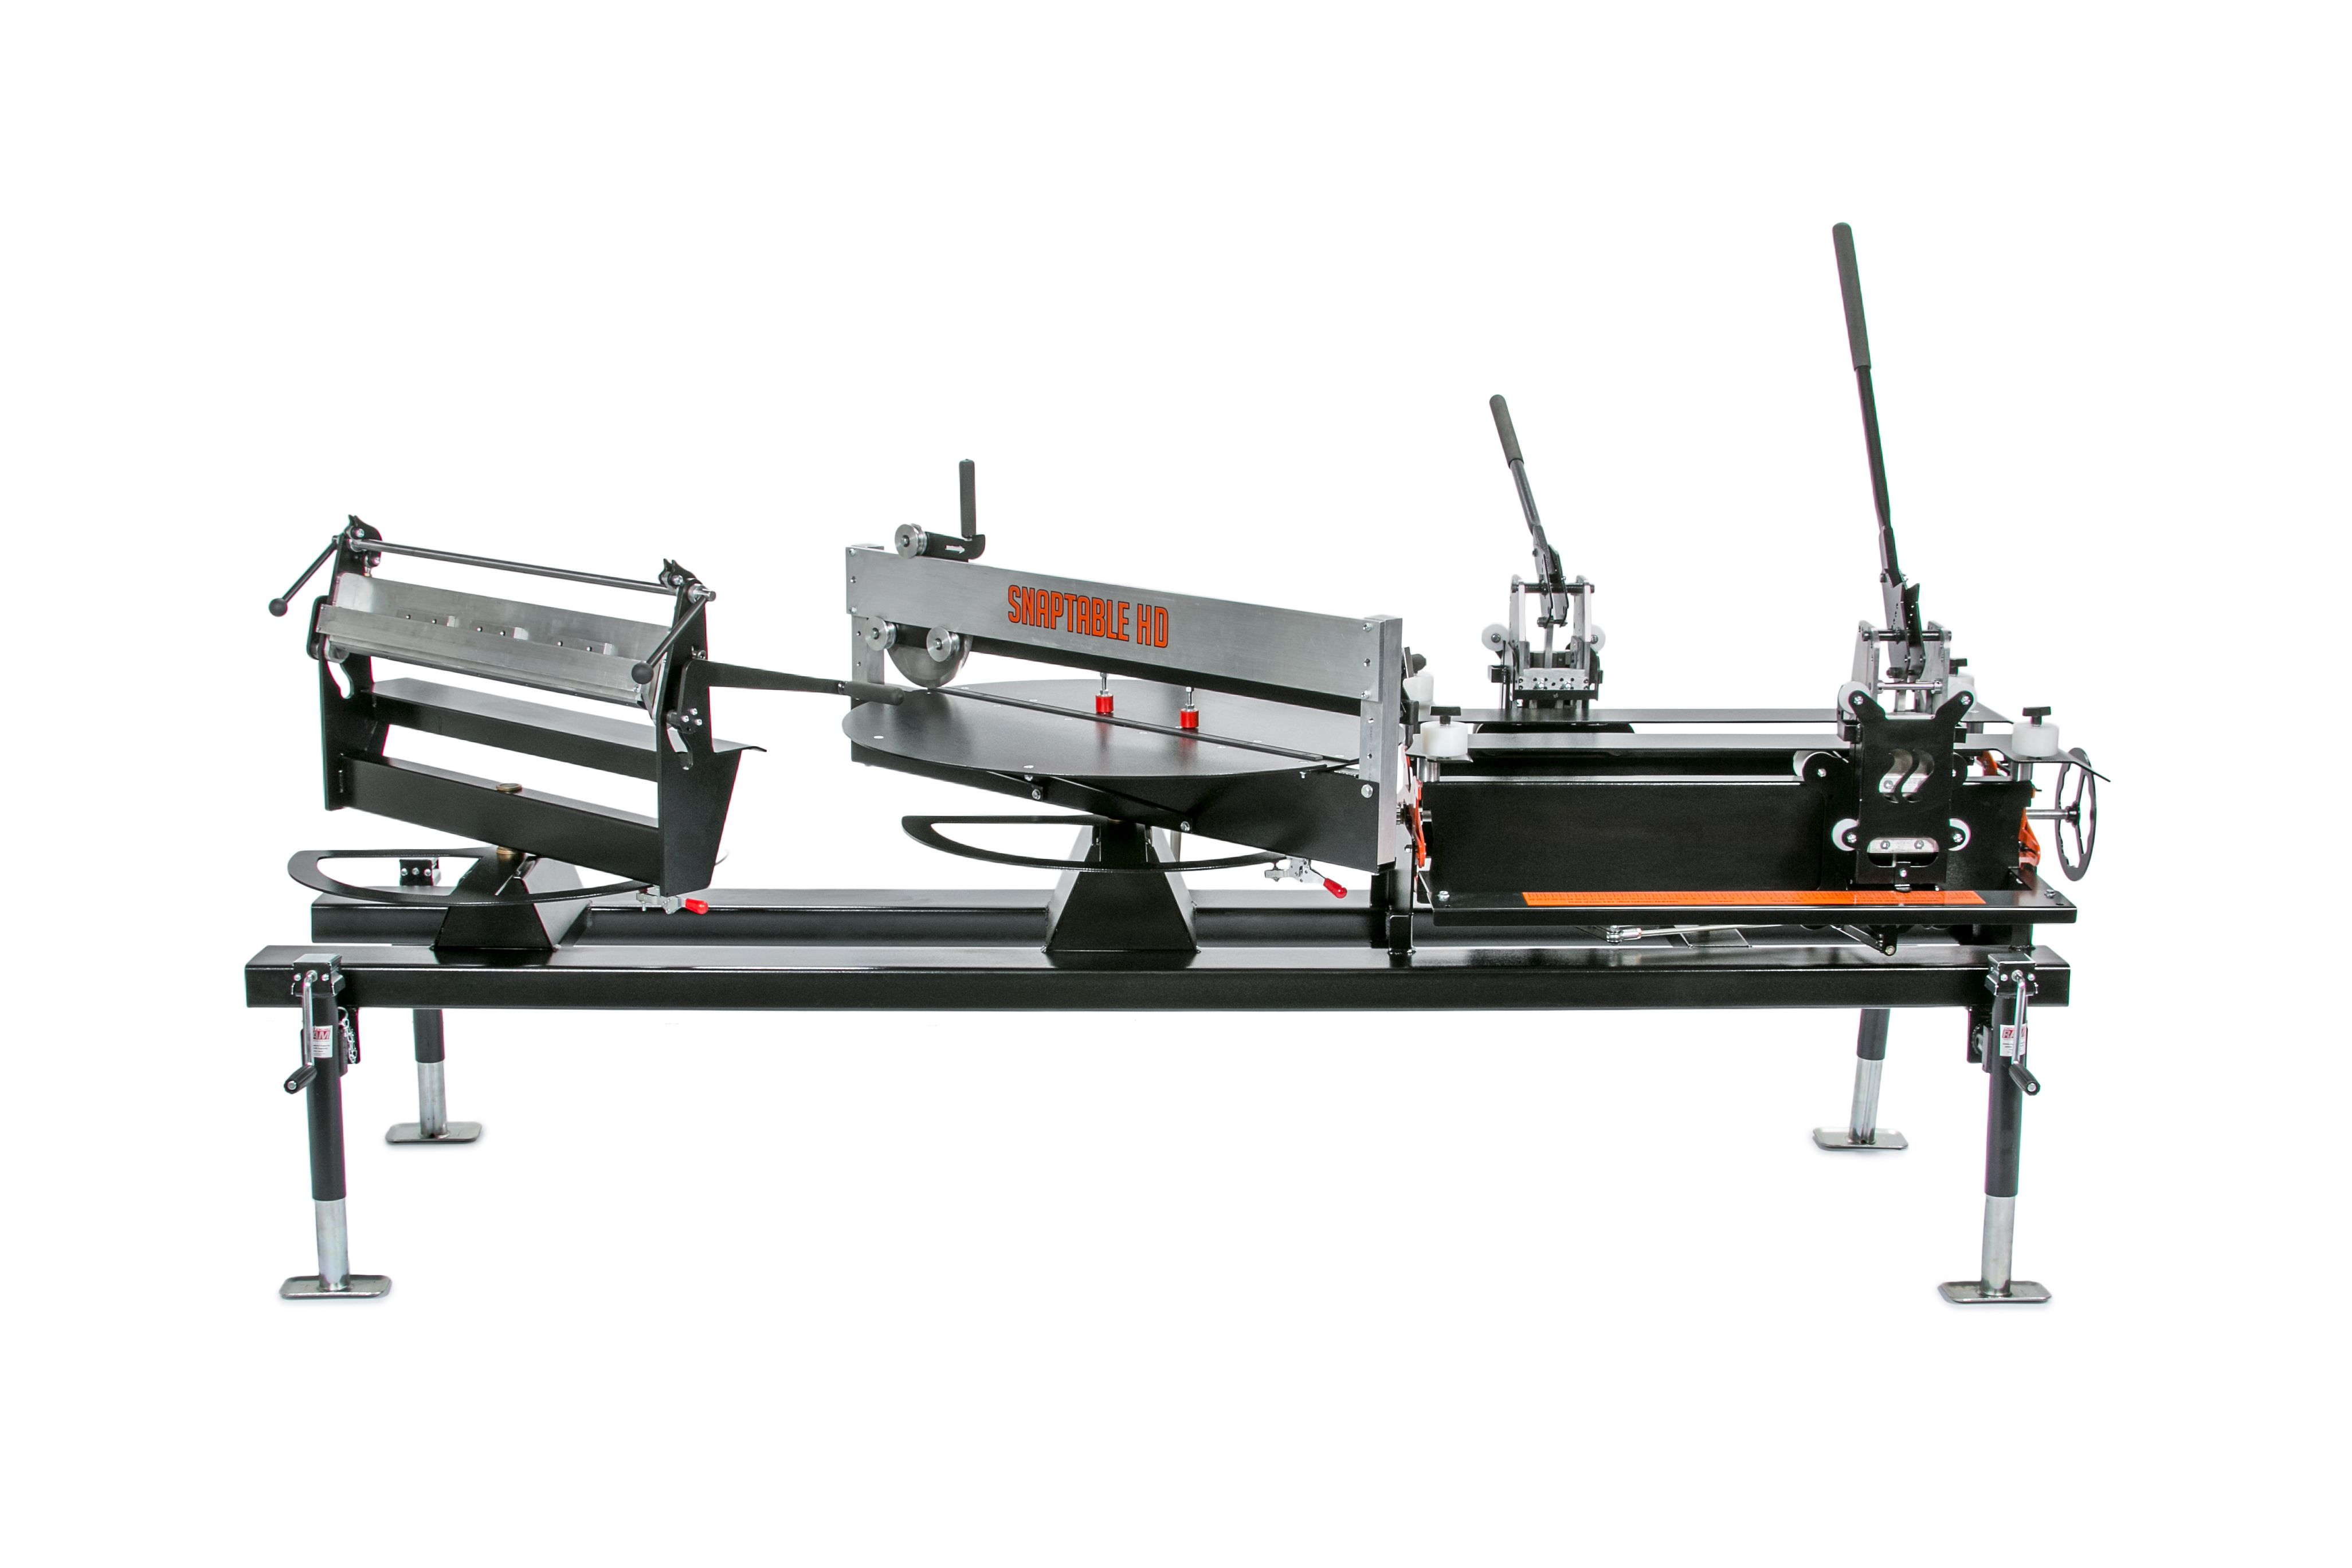 SnapTable HD, a table with three stations for notching, shearing, and hemming metal rooofing panels